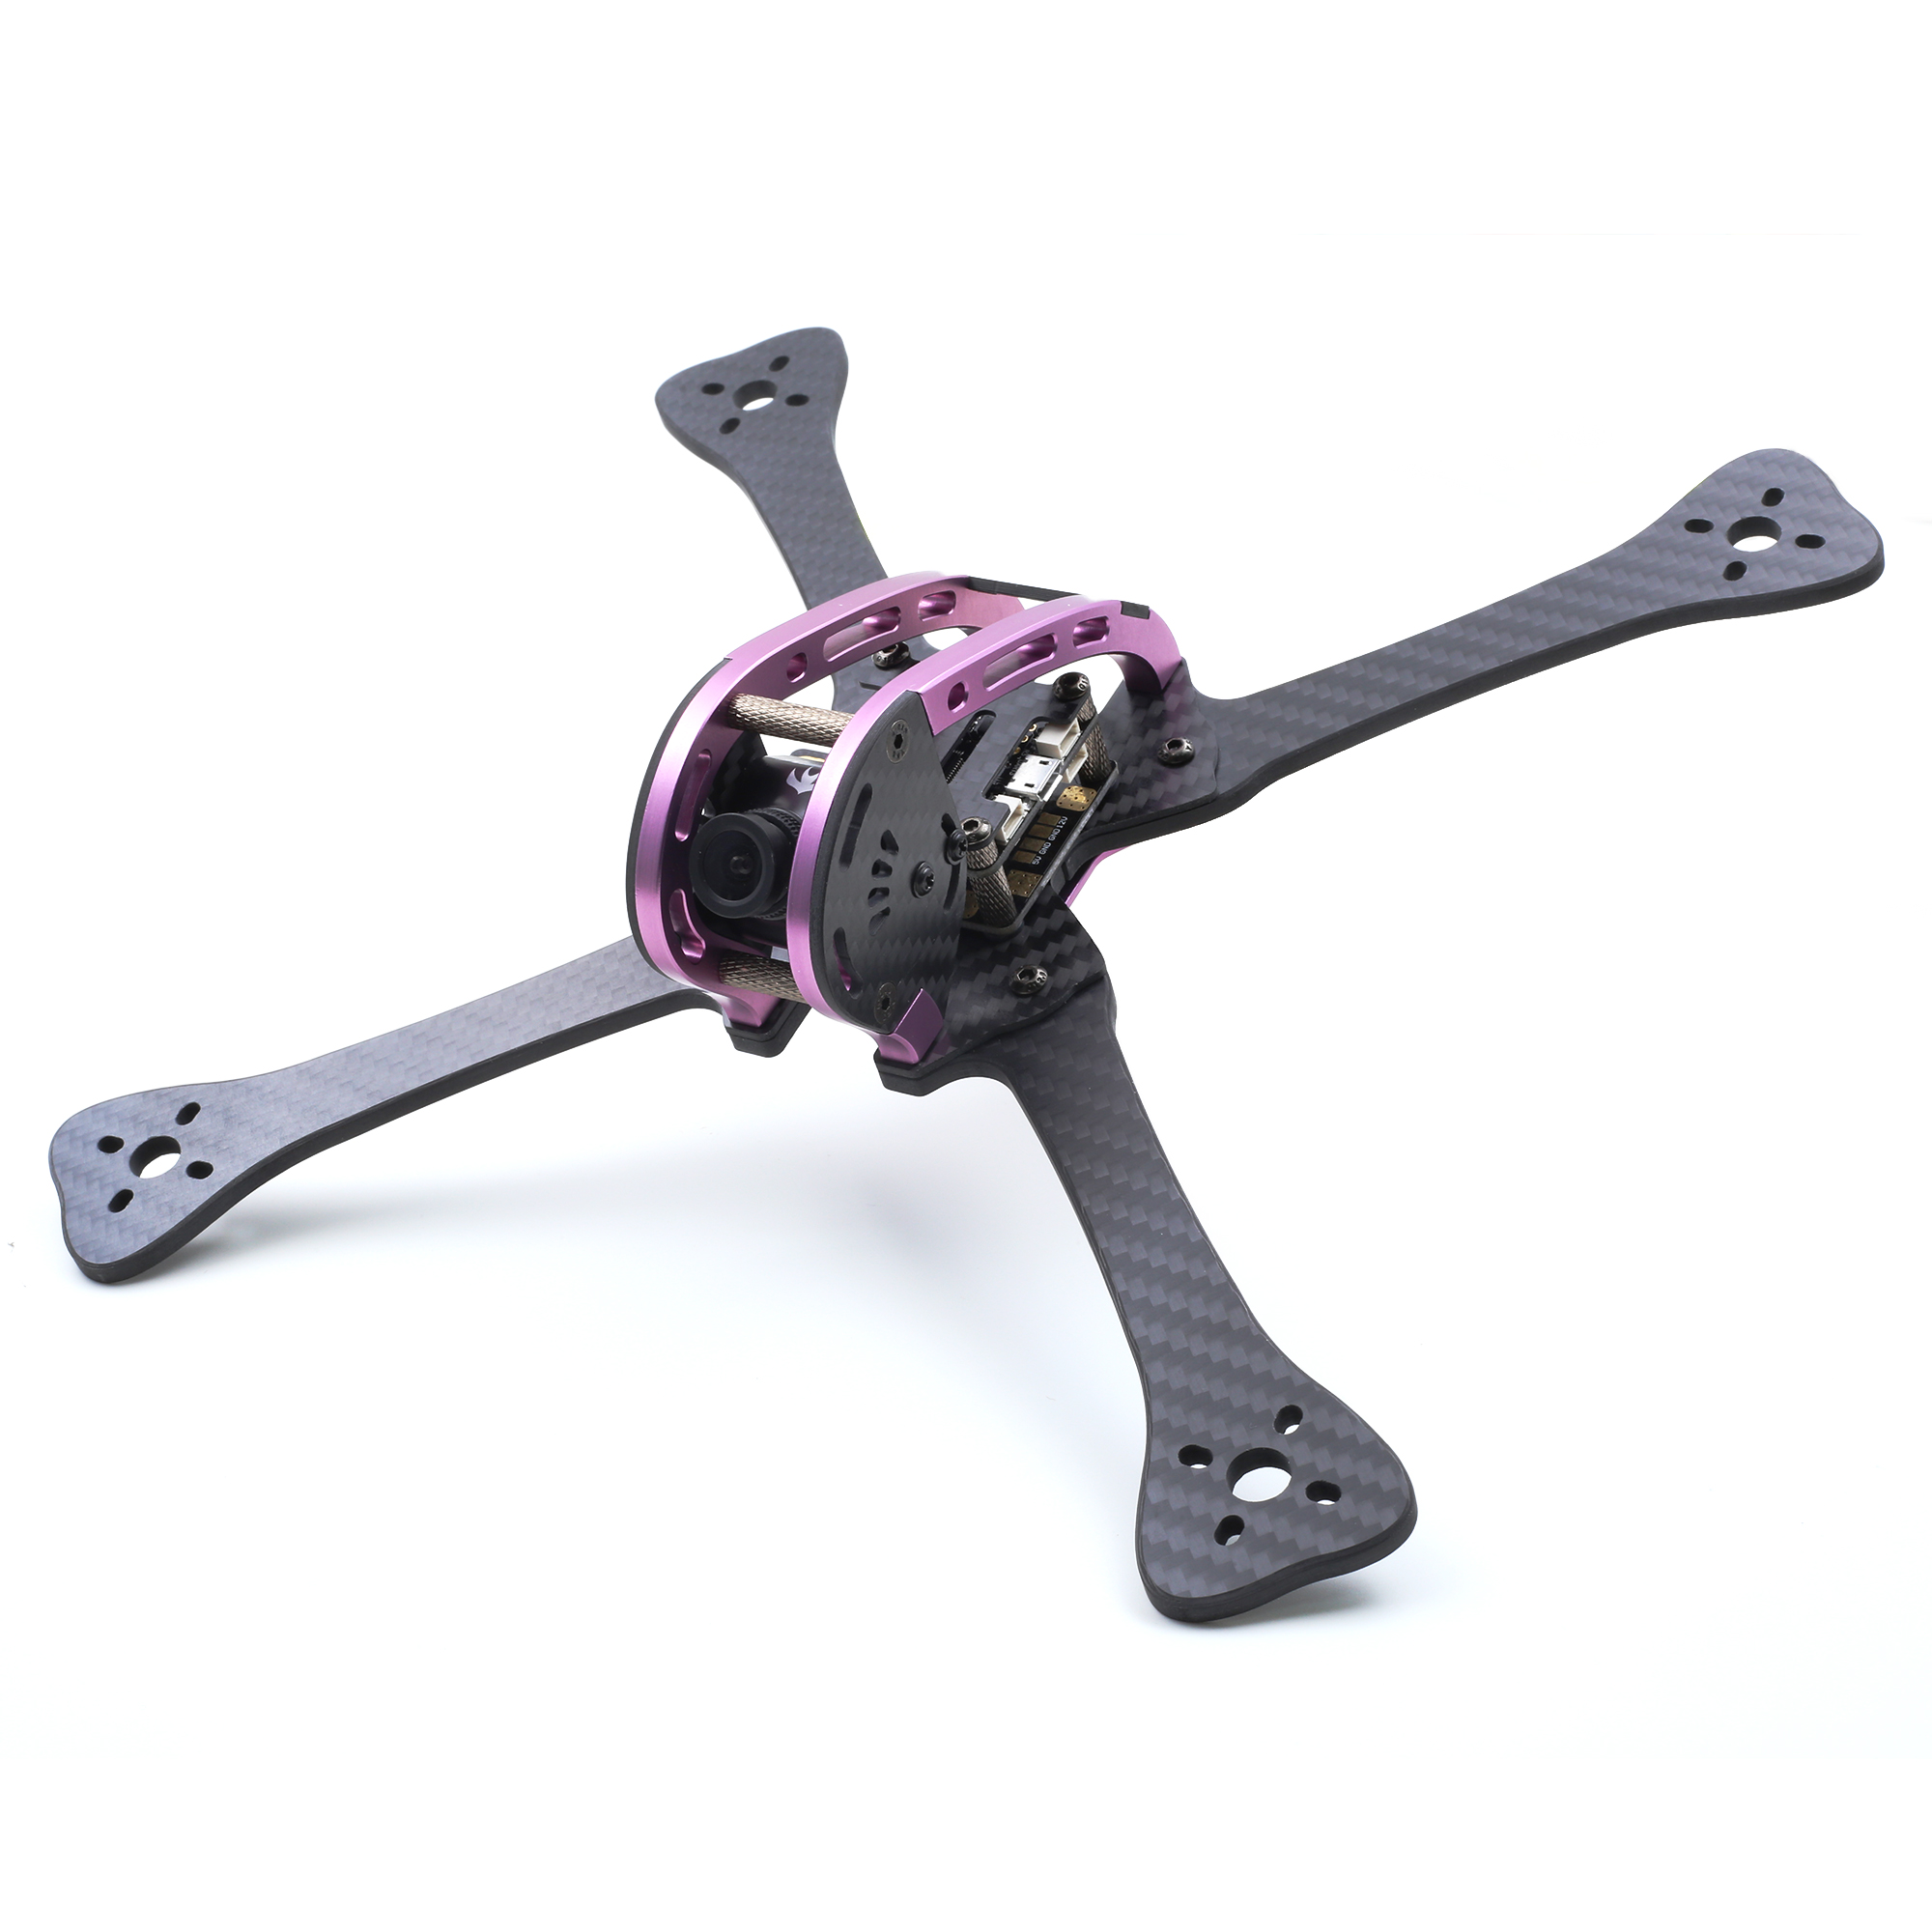 GEPRC GEP LX Leopard Purple Green Edition LX5 220mm FPV Racing Frame RC Drone 4mm Arm With PDB 5V & 12V